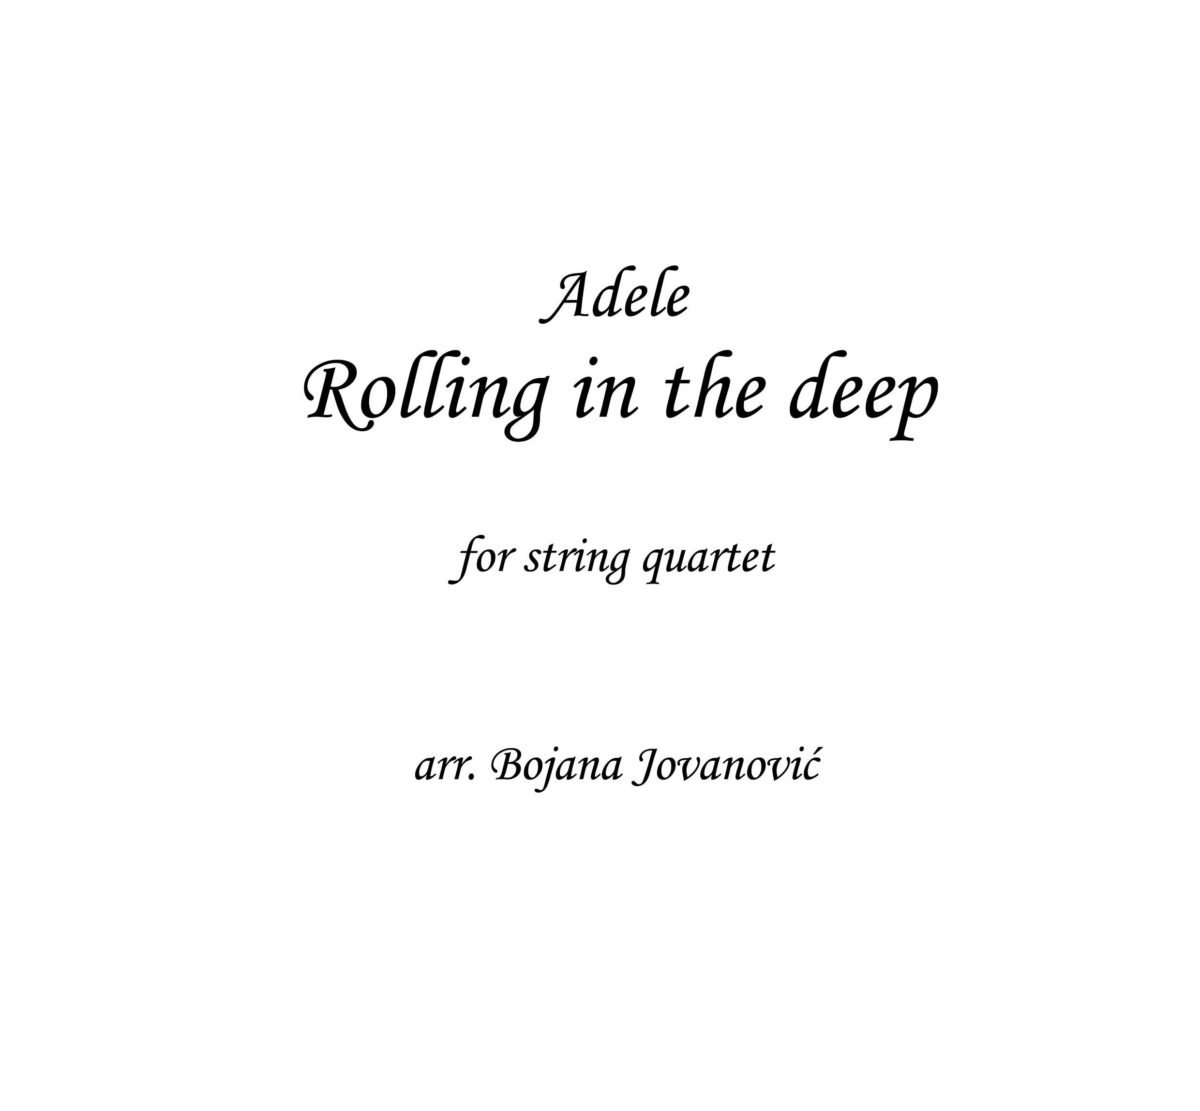 Rolliing in the deep (Adele) - Sheet Music